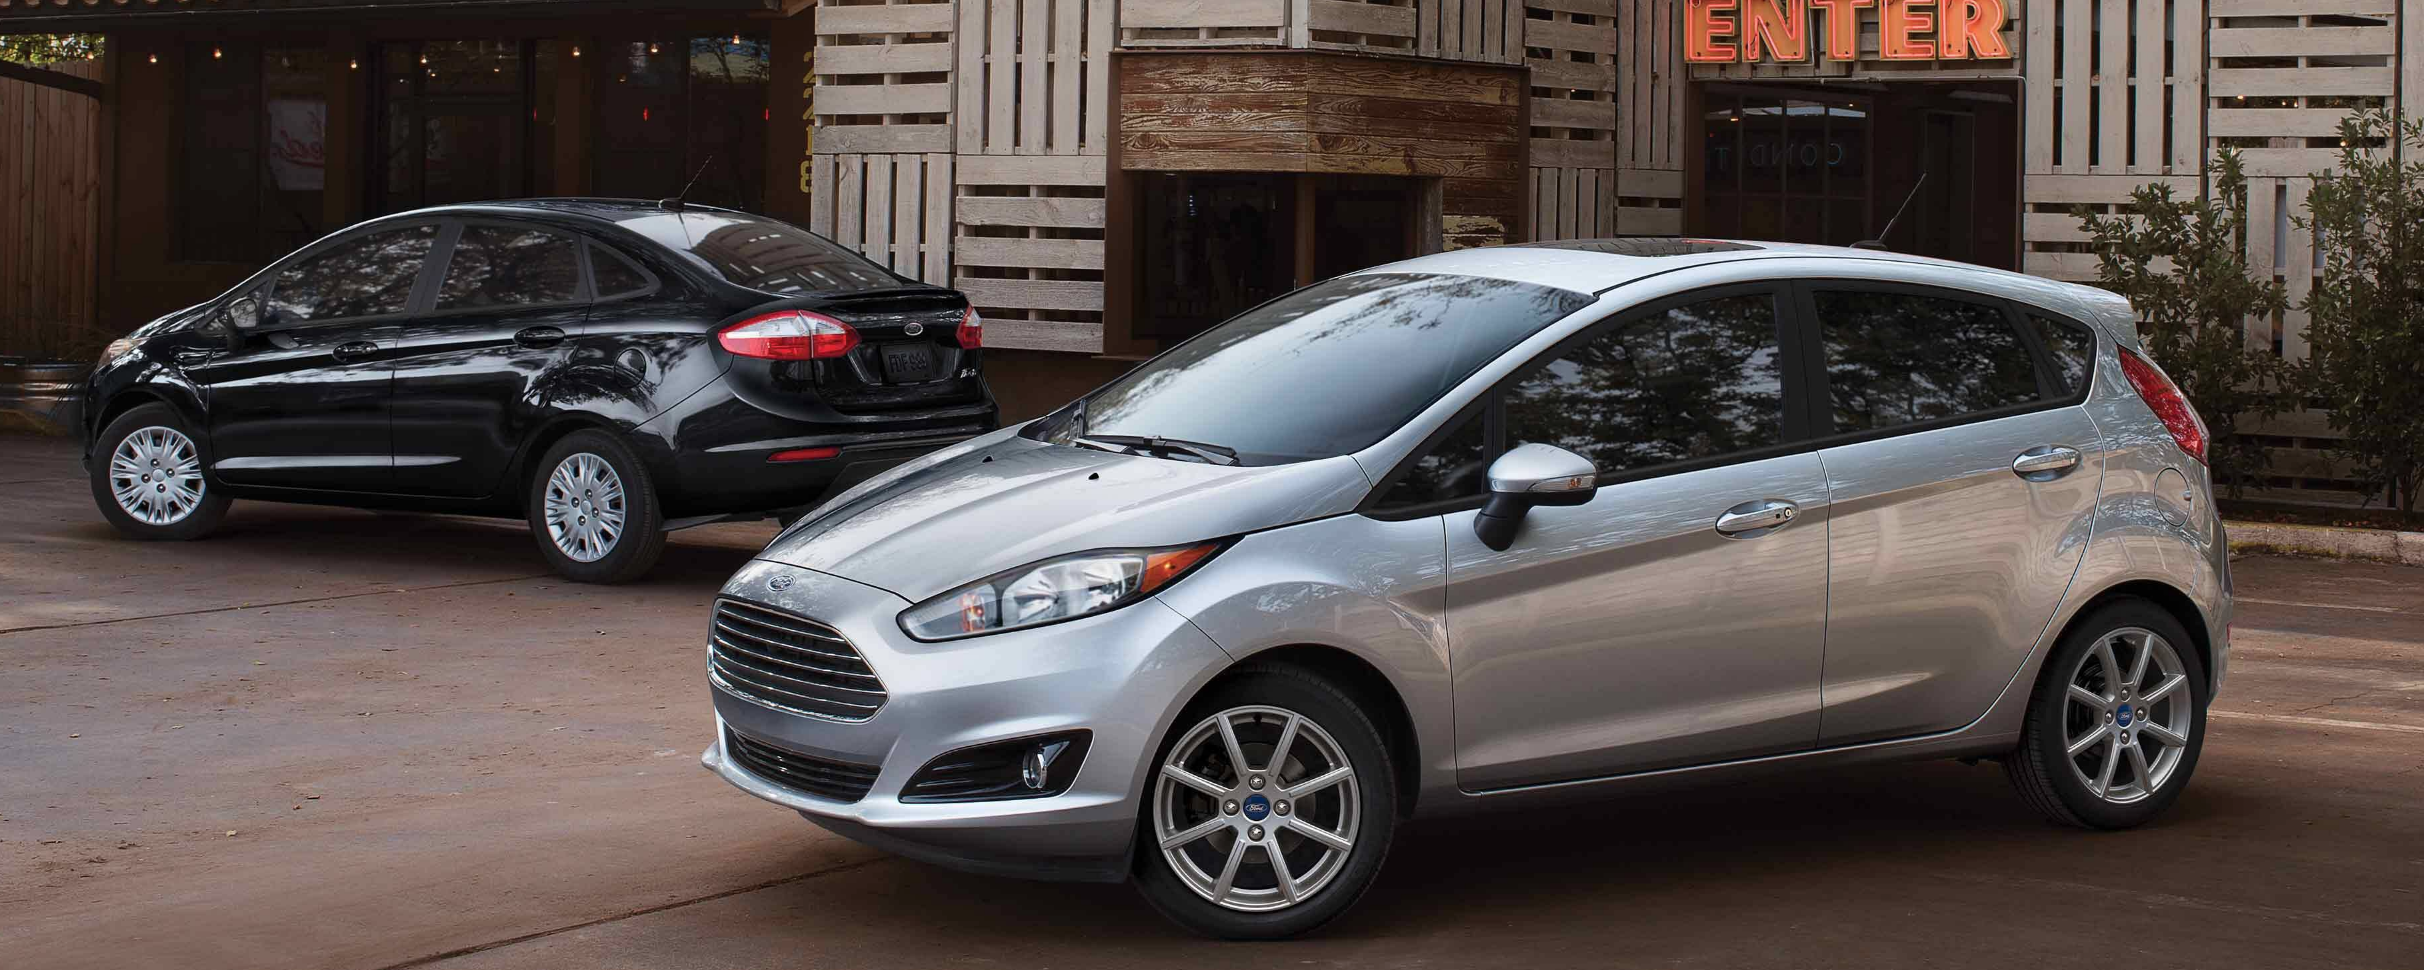 Ford Fiesta in Huntington